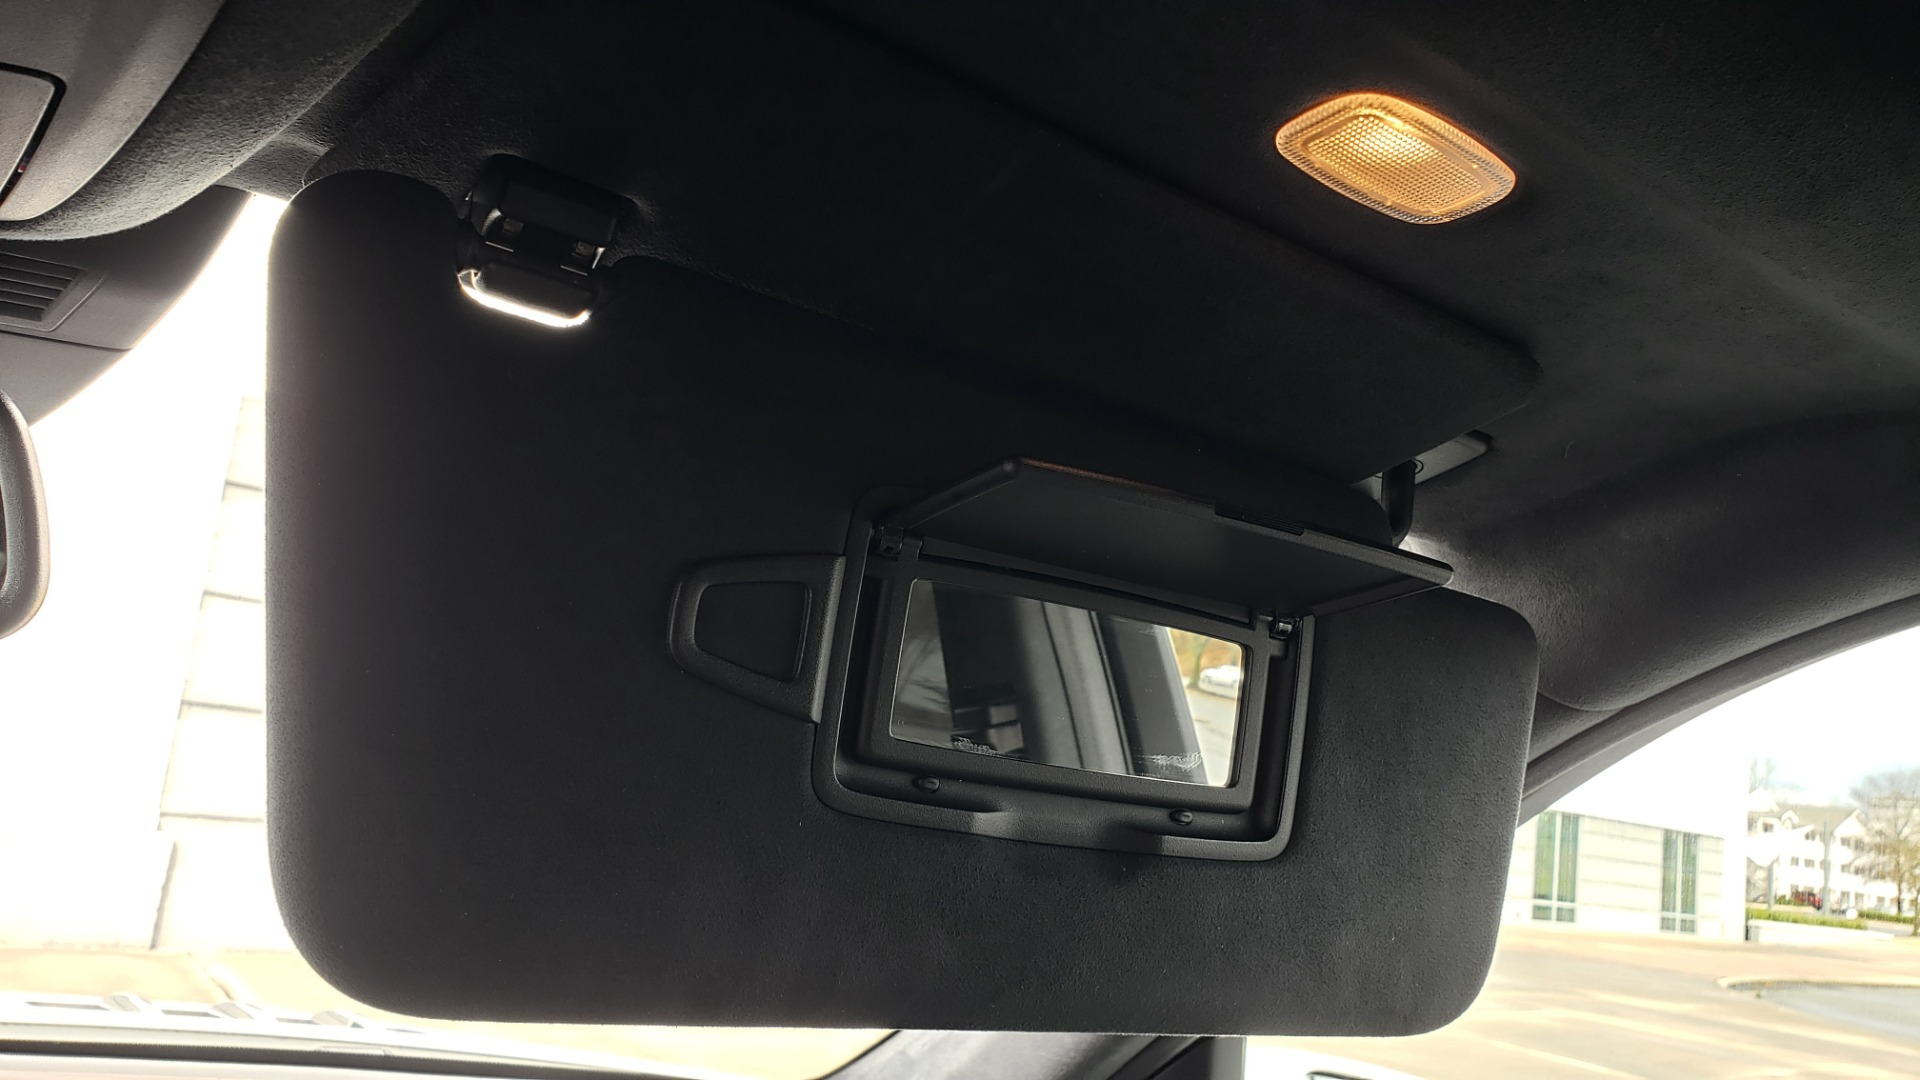 Used 2014 Mercedes-Benz GL-CLASS GL 63 AMG 4MATIC / NIGHT VIEW ASSIST PLUS / BANG & OLUFSEN SND for sale Sold at Formula Imports in Charlotte NC 28227 60